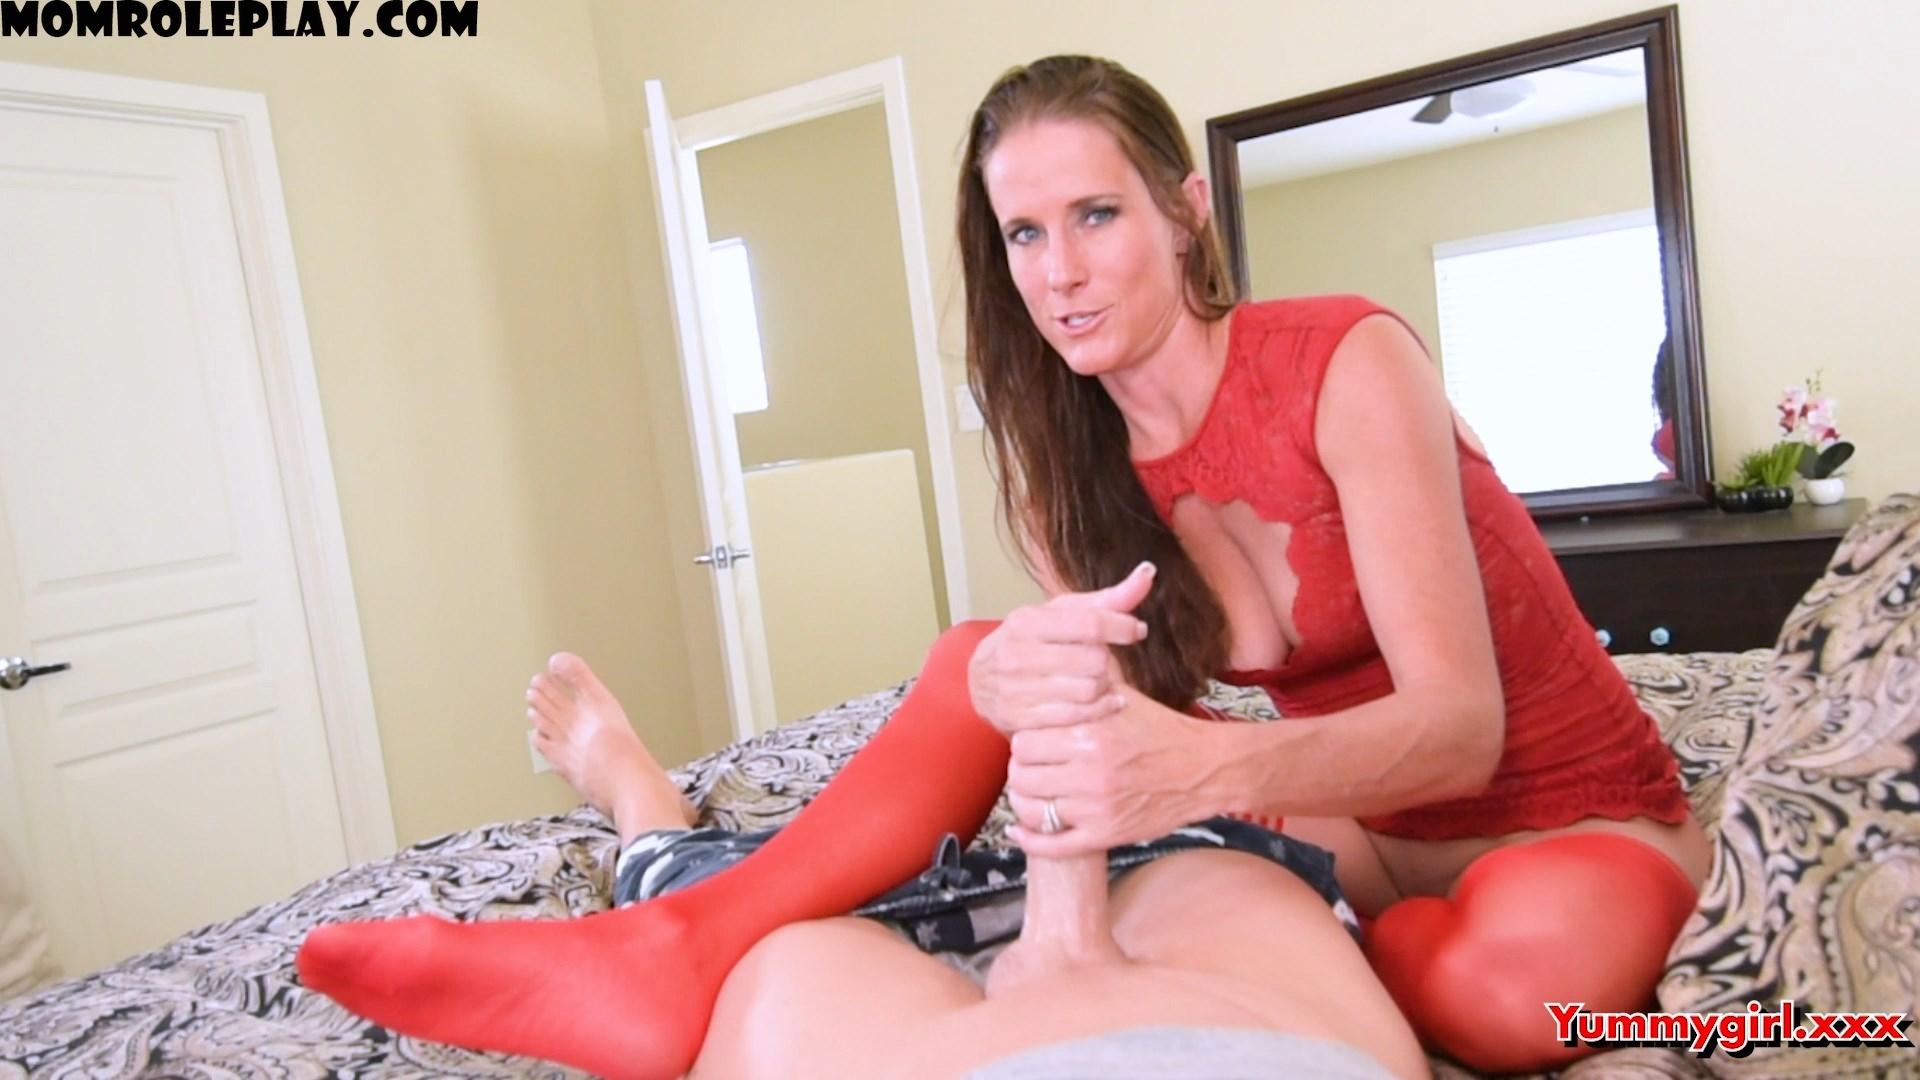 Yummysofie - Sofie Marie - Yummy Step Mom Teaches Son to Jerk Off